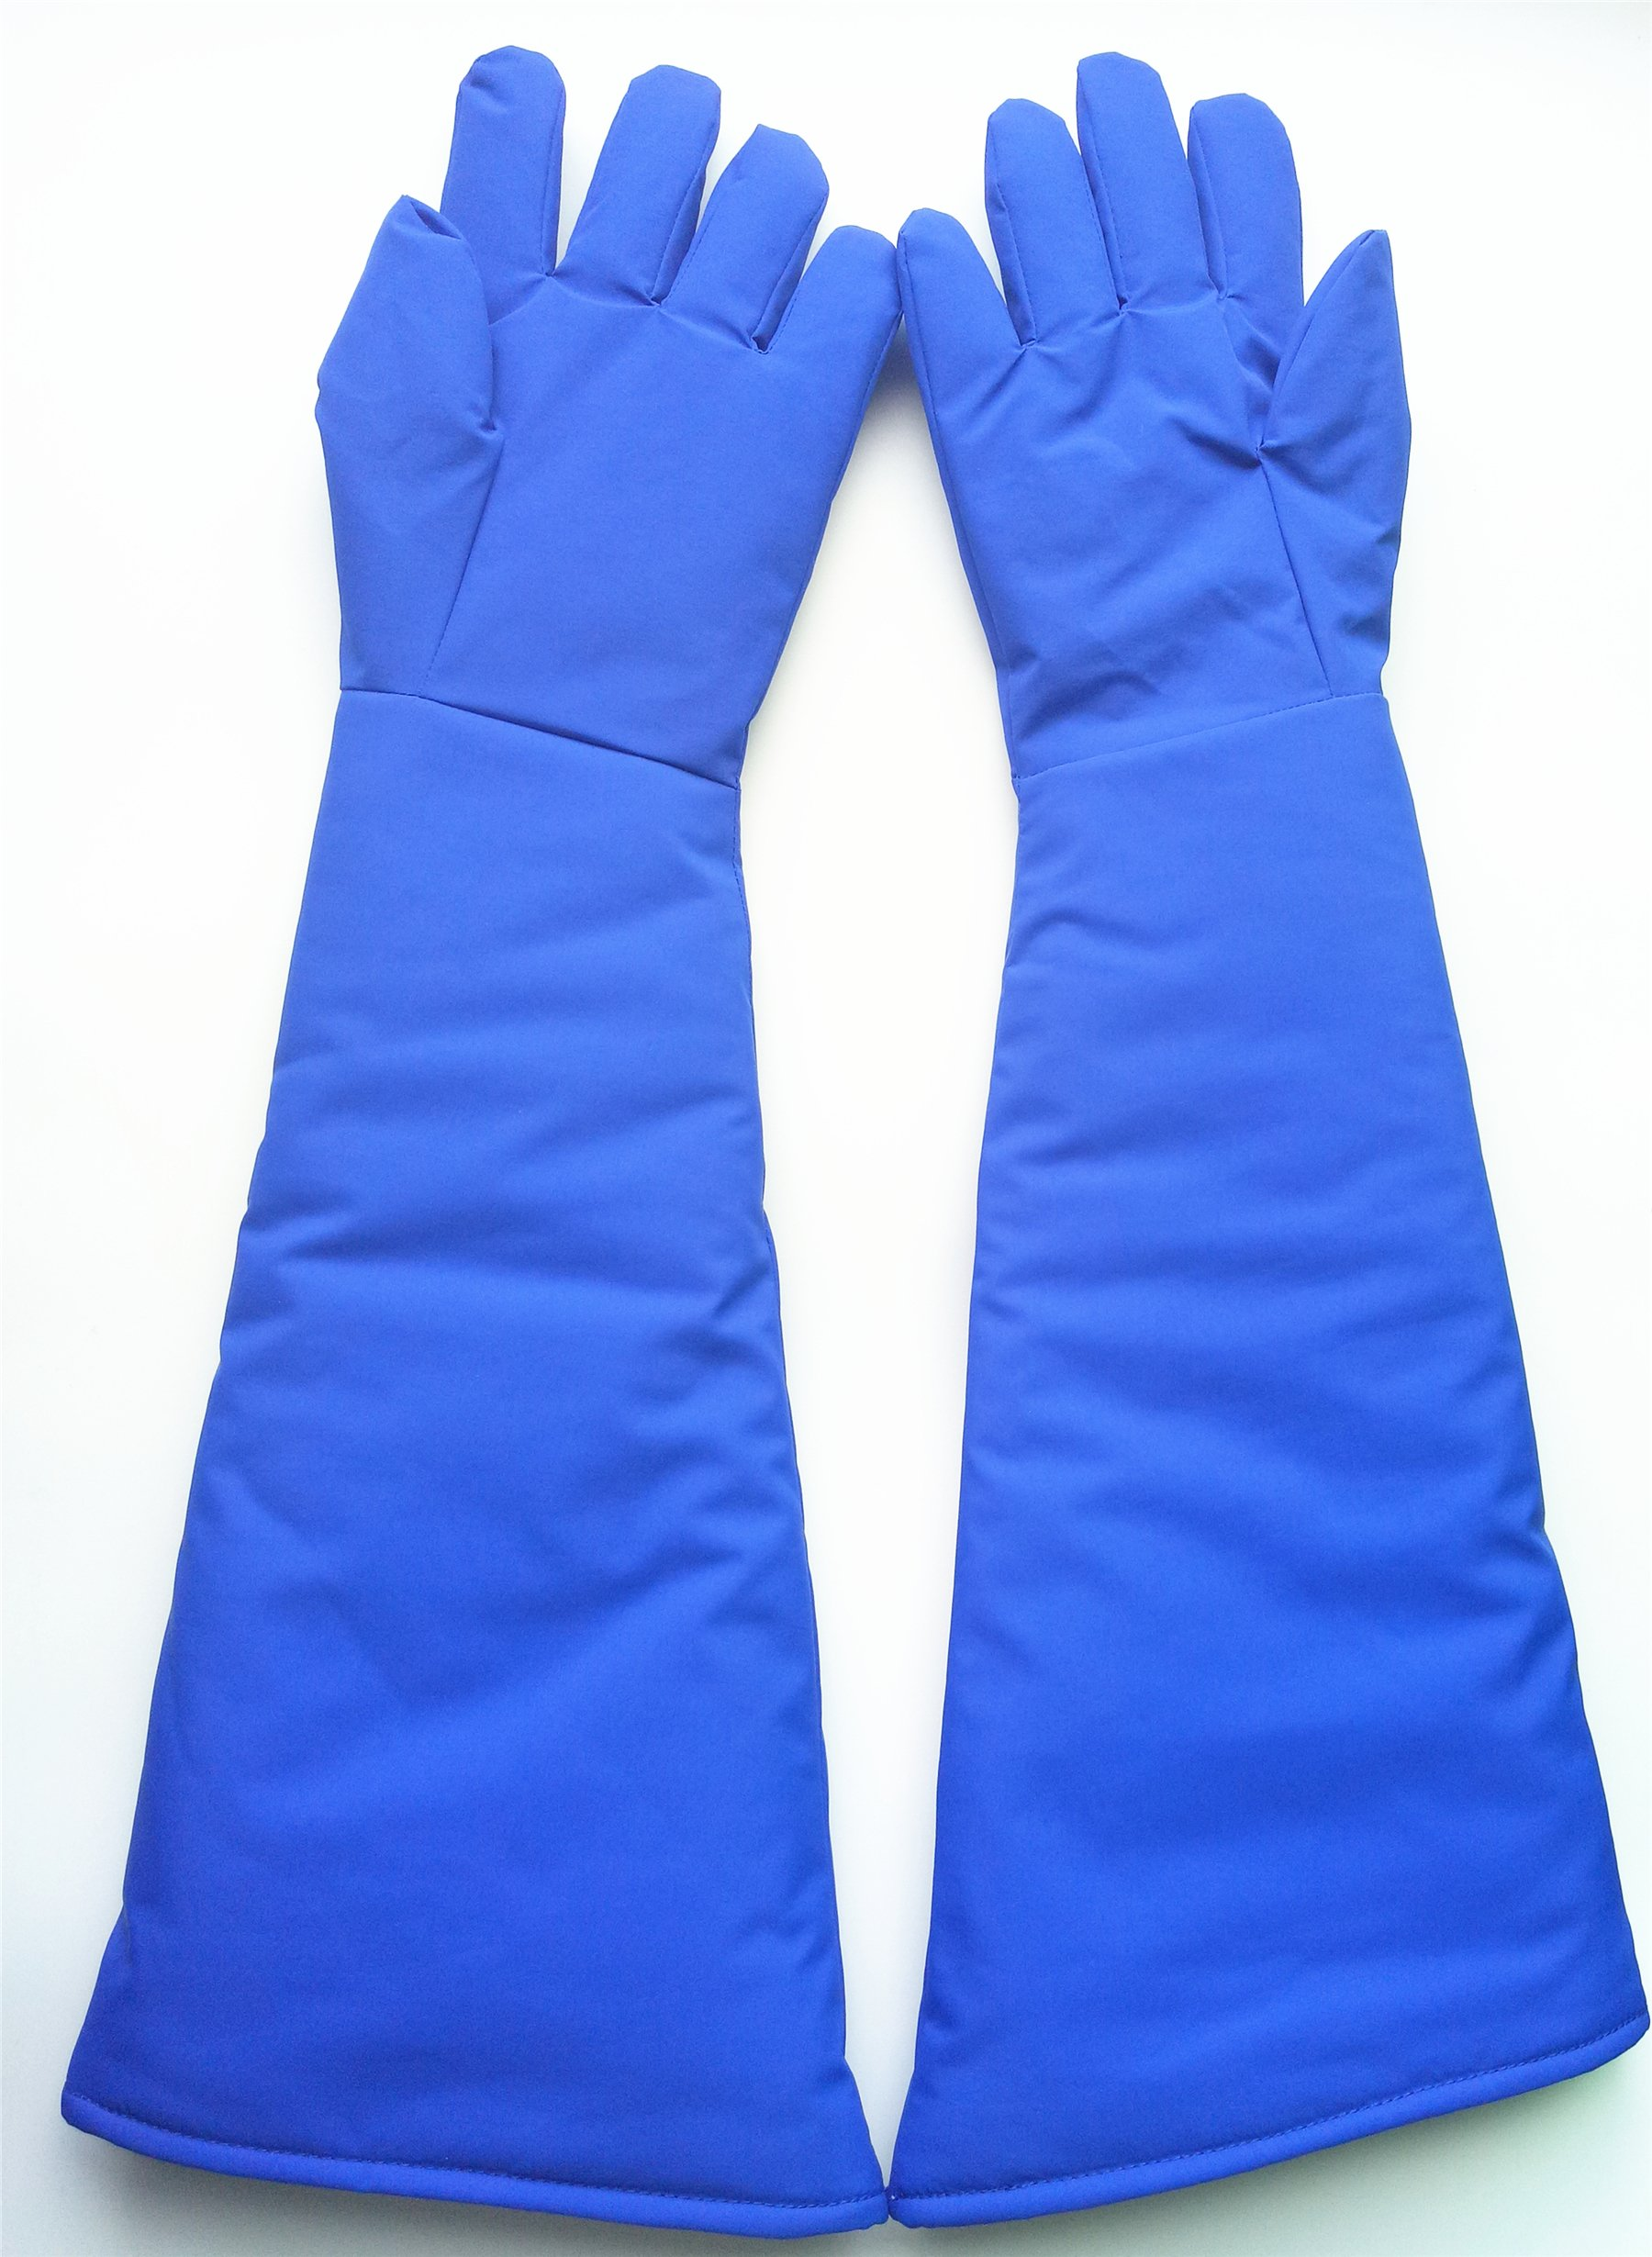 Inf-way 4 Sizes Long Cryogenic Gloves Waterproof Low Temperature Resistant LN2 Liquid Nitrogen Protective Gloves Cold Storage Safety Frozen Gloves (Blue Large) by Inf-way (Image #4)